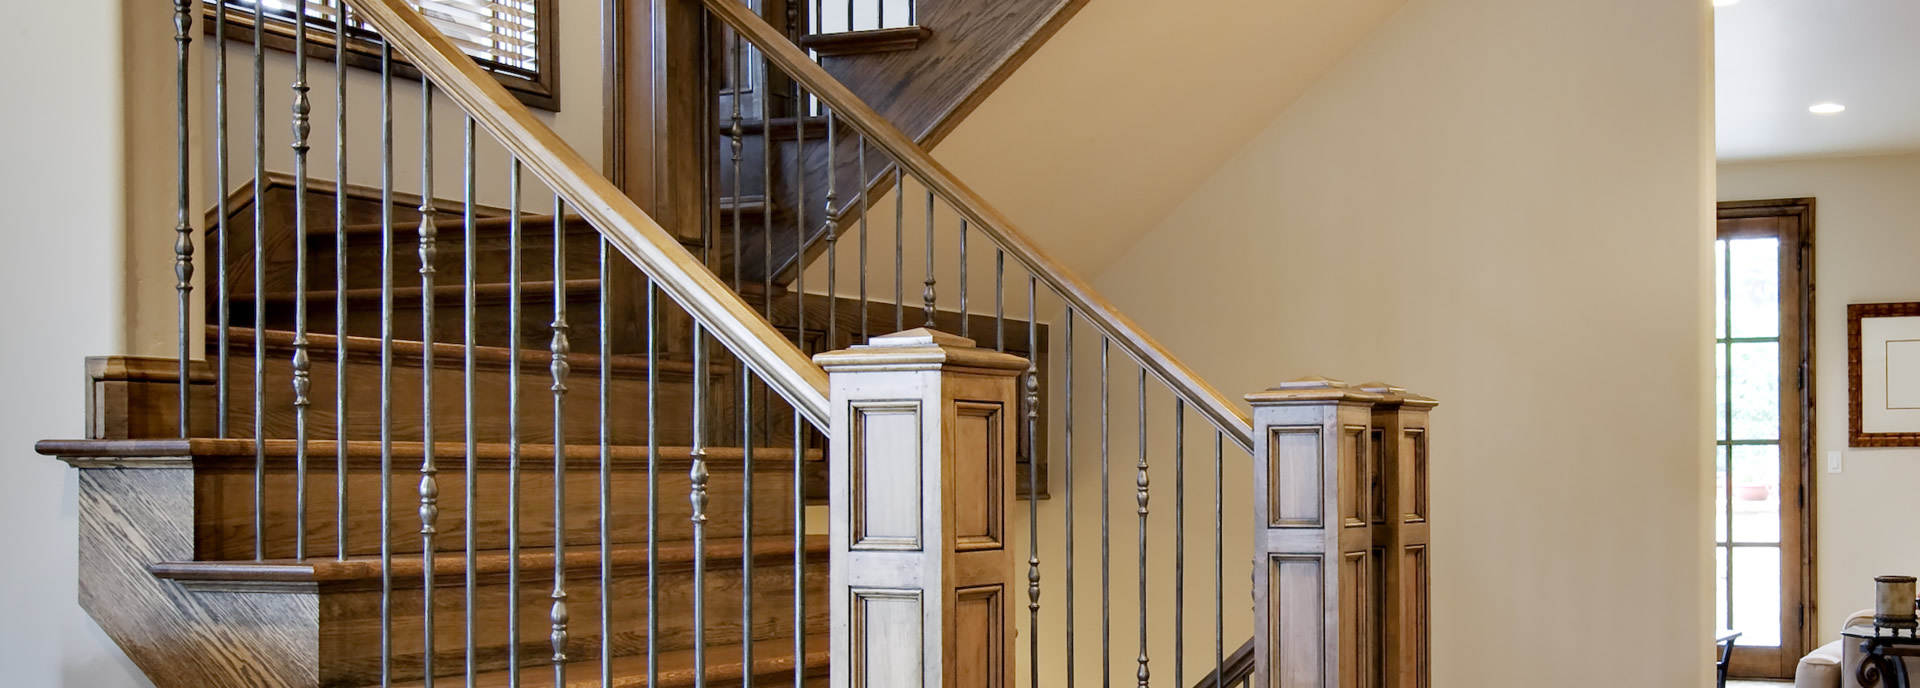 Custom Stairs: We Take Commercial Stairs to the Next Level, Part 2 Alpharetta, GA